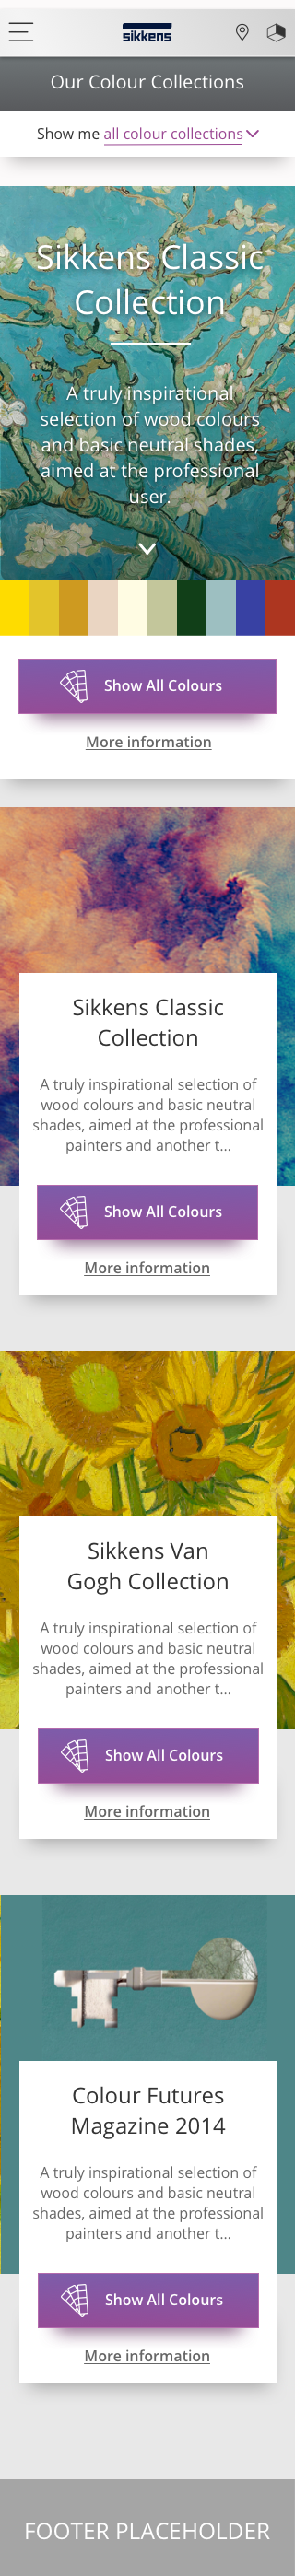 01_AkzoNobel-Painters-Mobile-Collections-overview